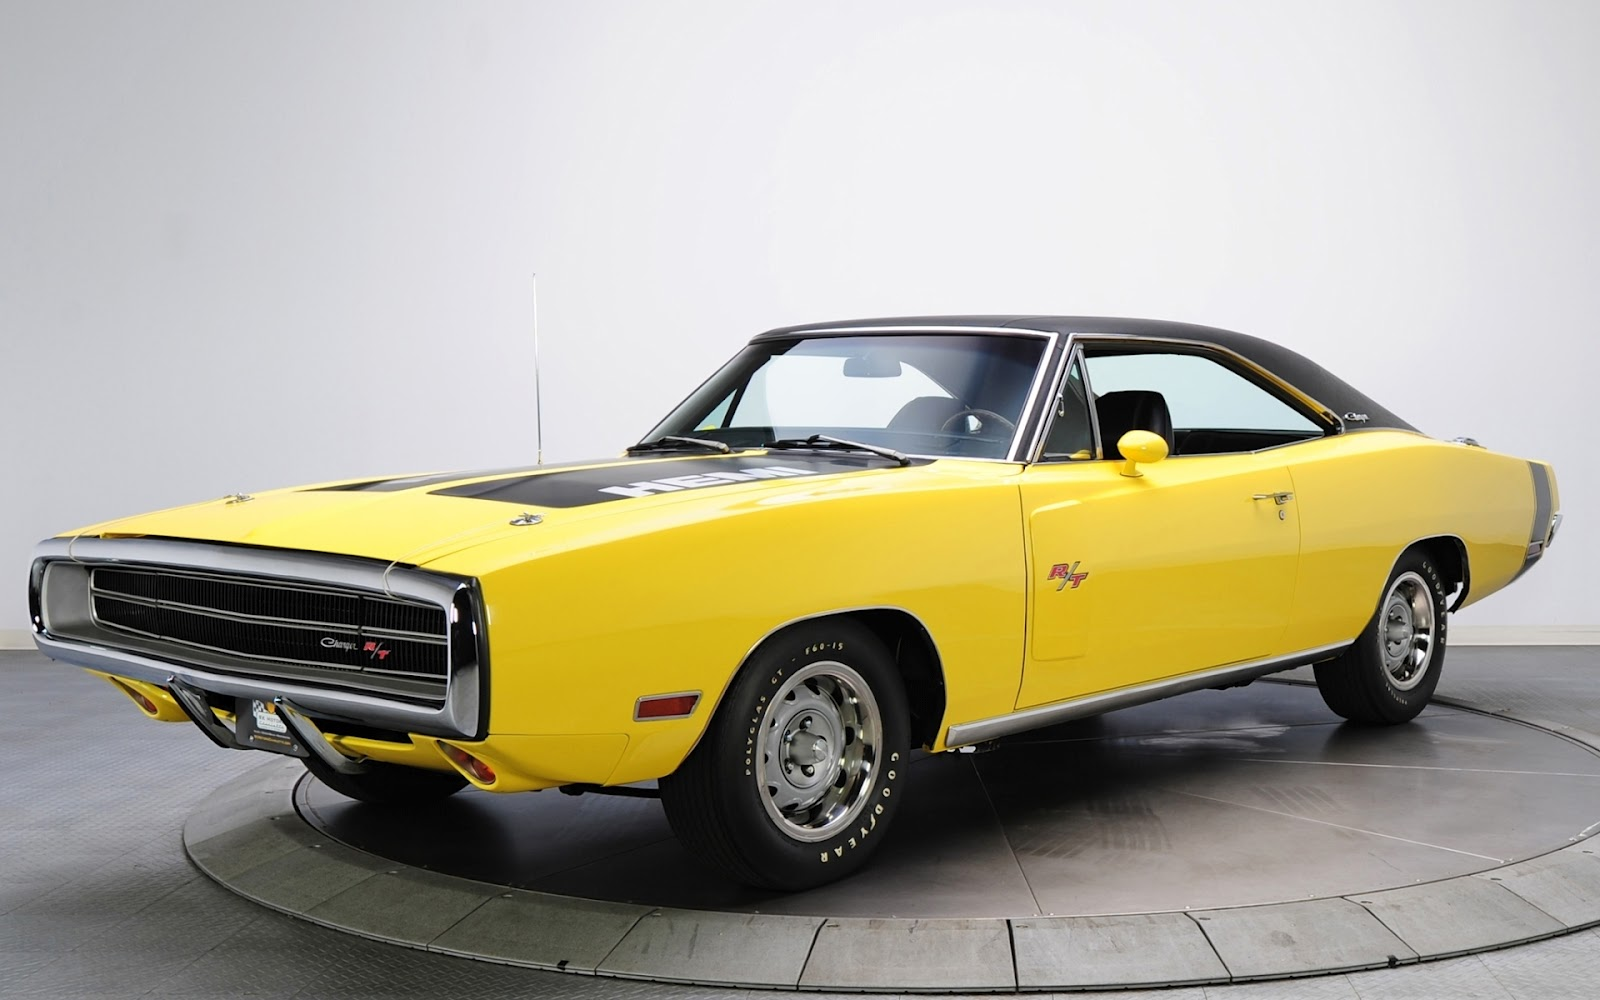 dodge charger 1970 fondos de pantalla hd wallpapers hd. Black Bedroom Furniture Sets. Home Design Ideas